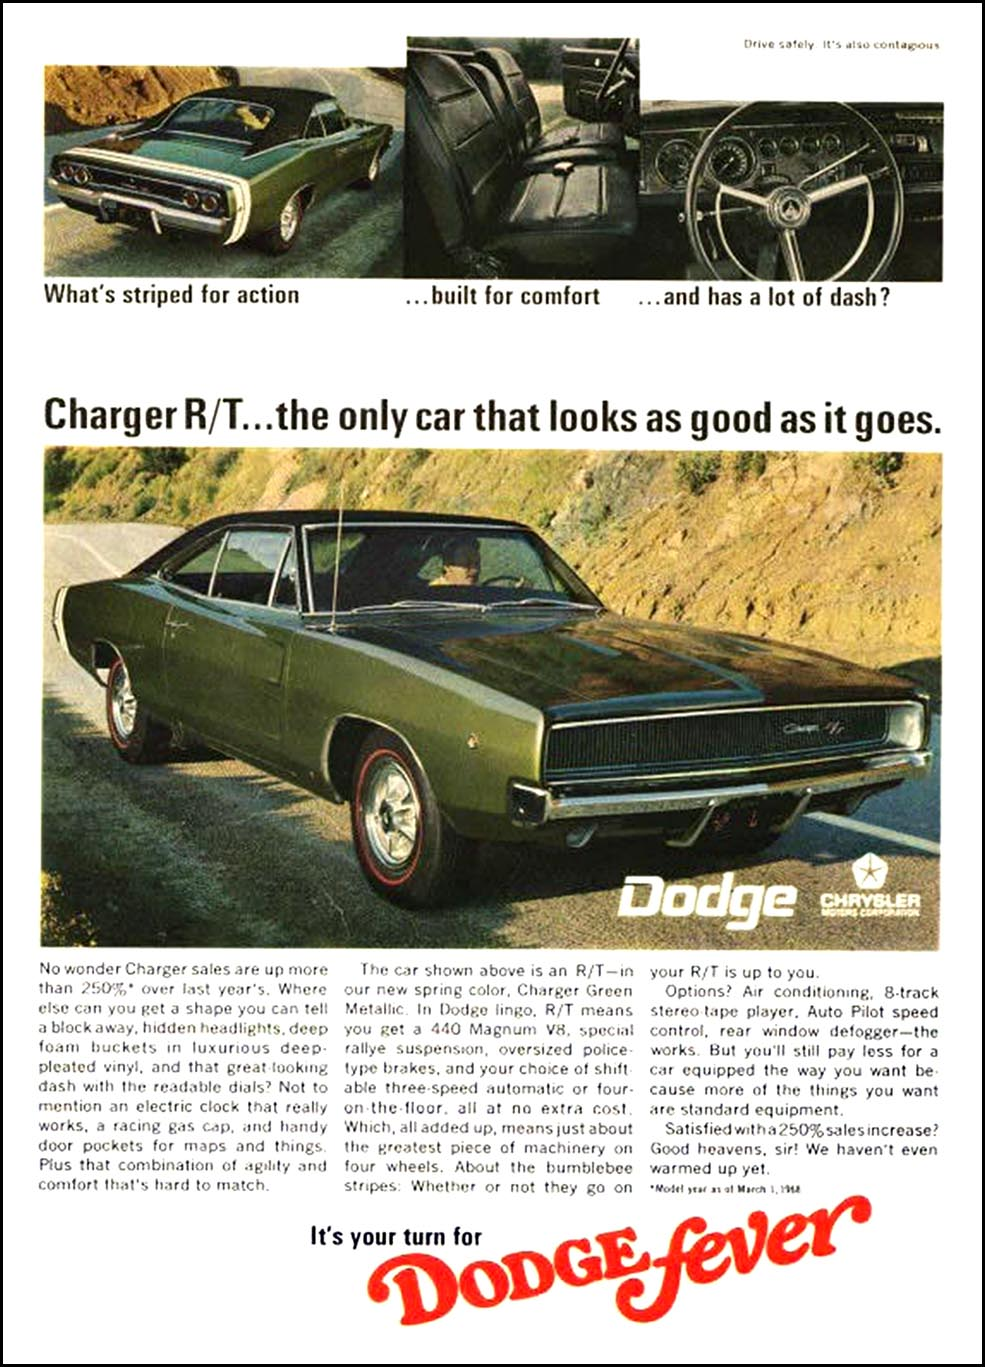 1968 dodge charger ads ad cars mopar classic chargers